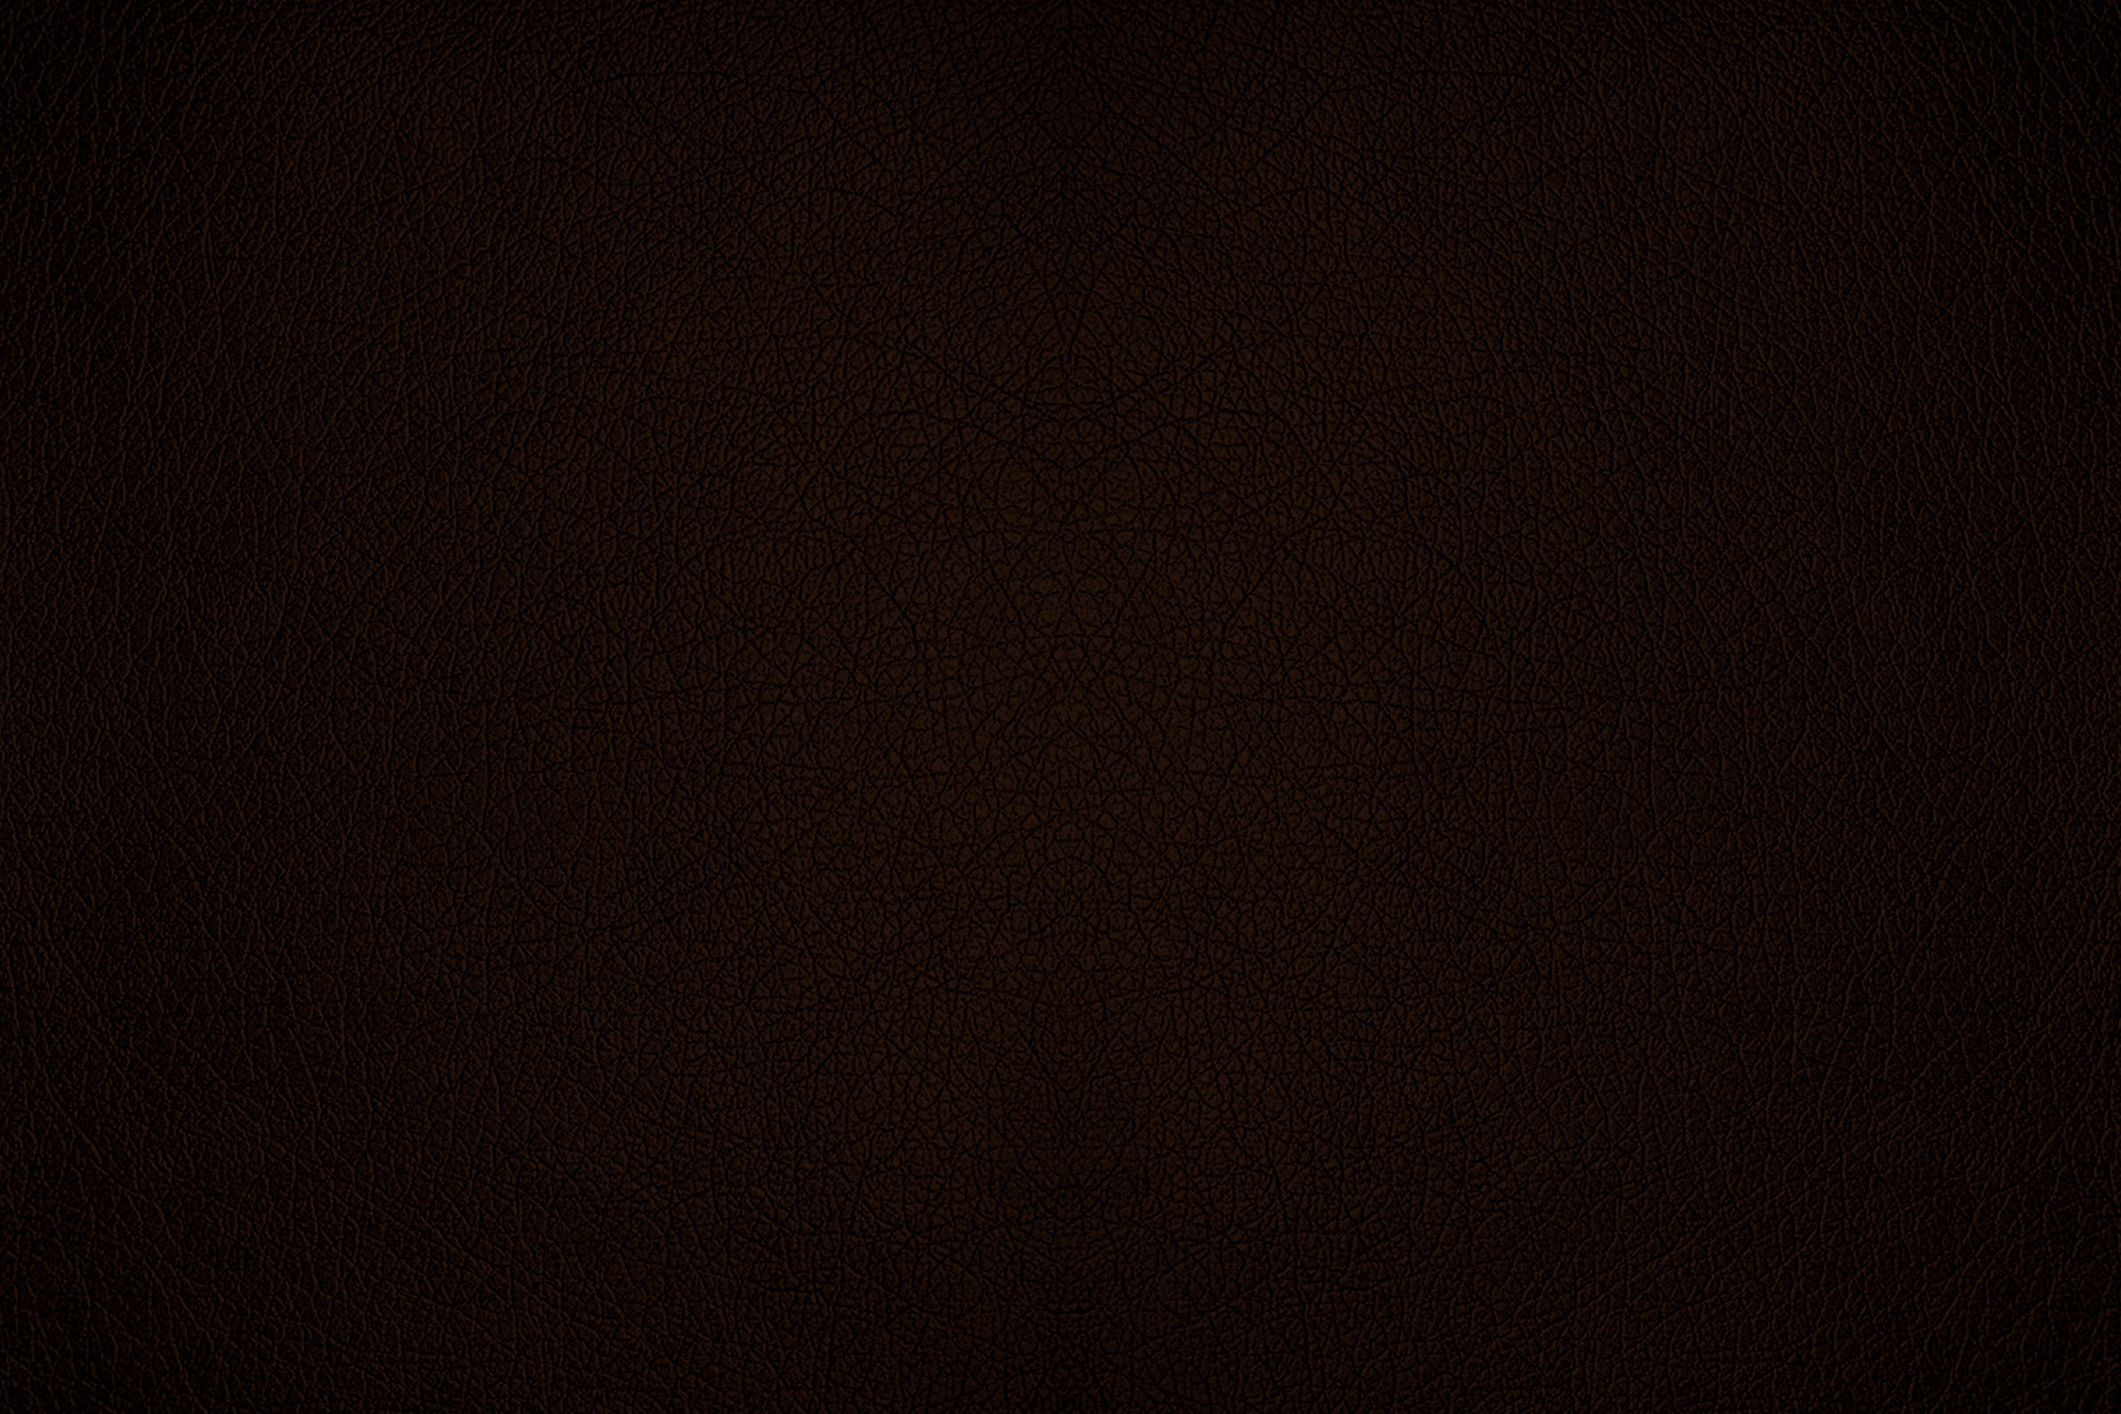 116852__leather-black-cracked-background-texture_ V2